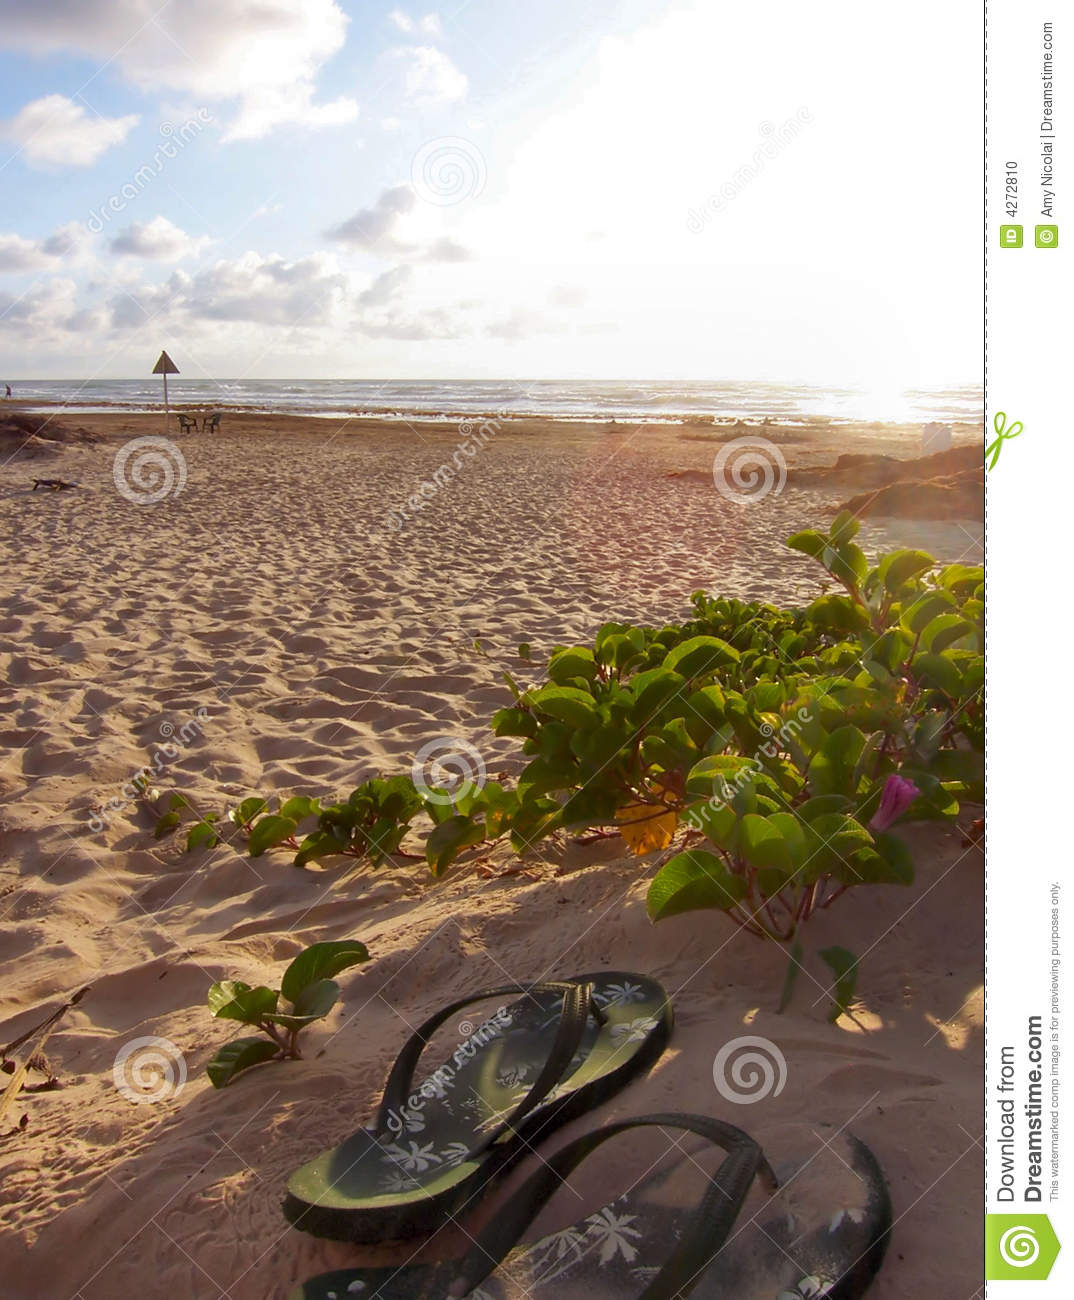 Beach with two shoes